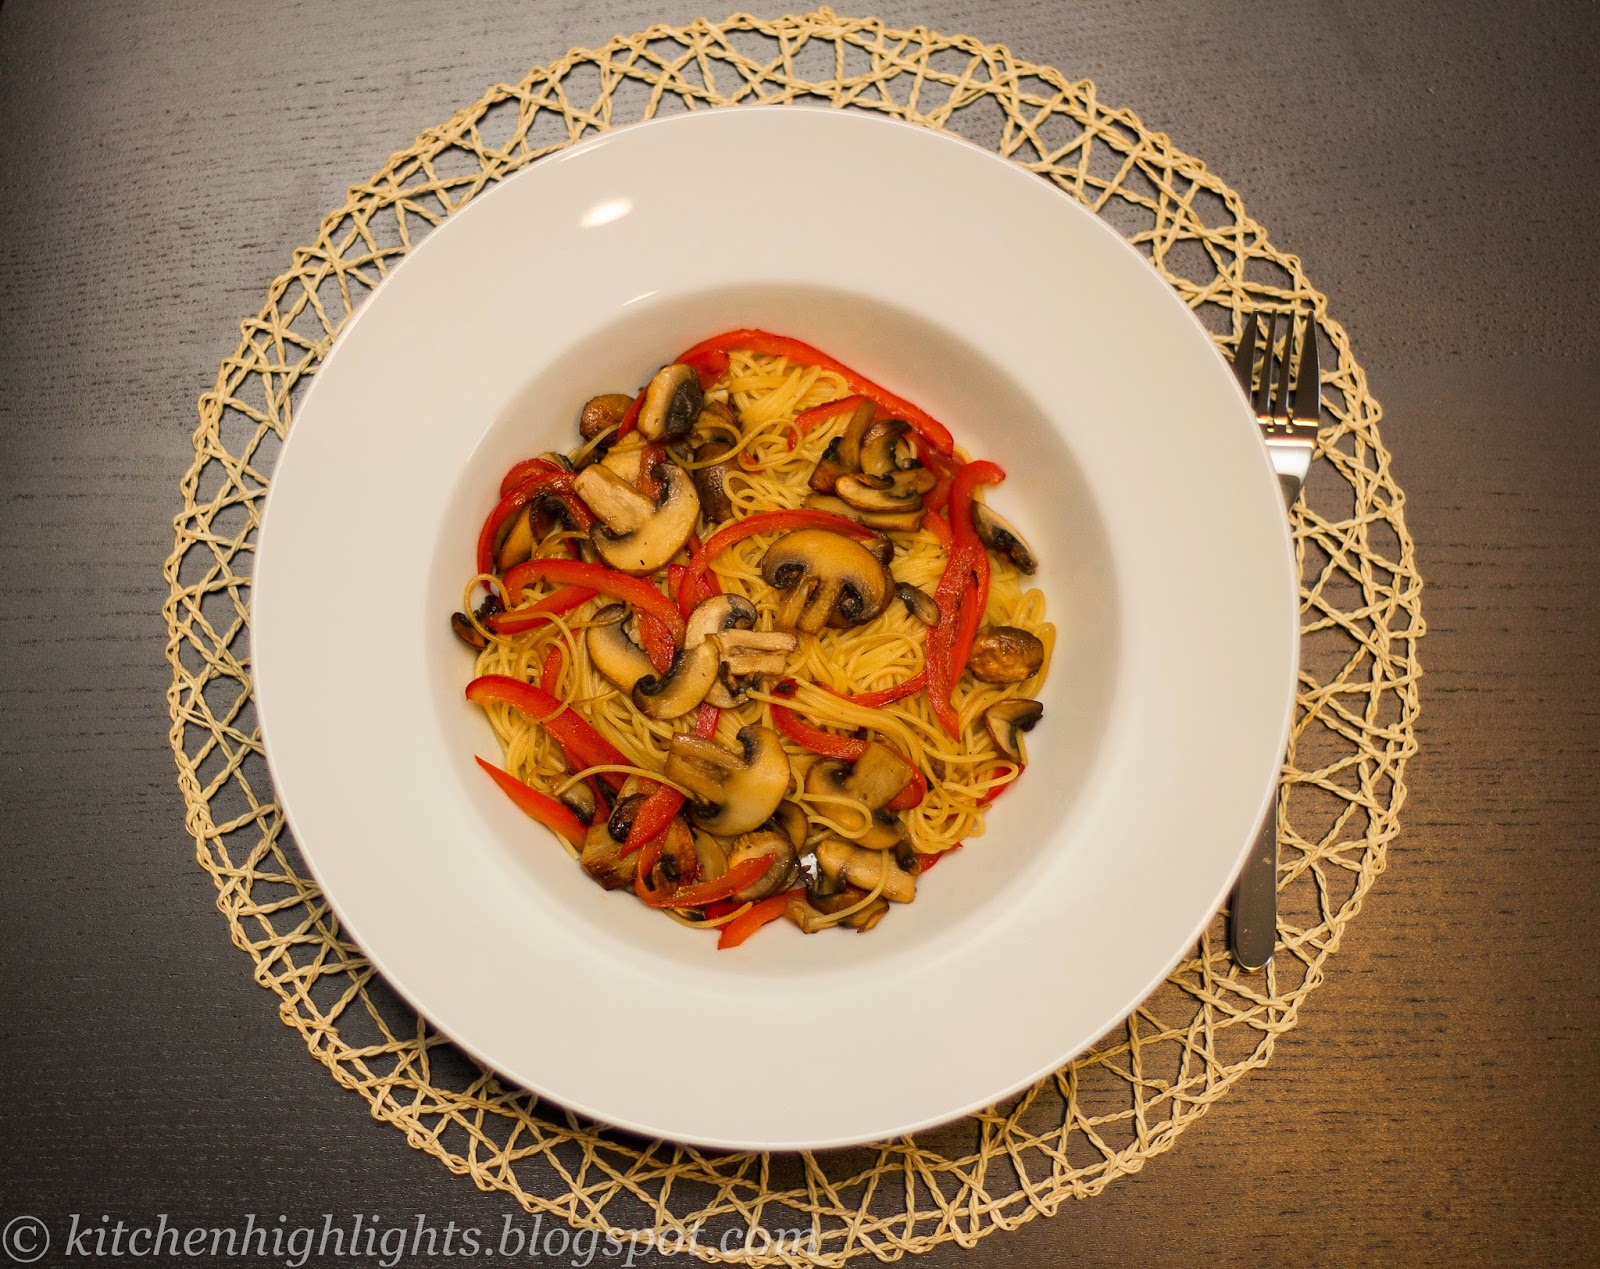 This recipe combines the nutritional benefits of both mushrooms and bell-pepper in a delicious pasta dish